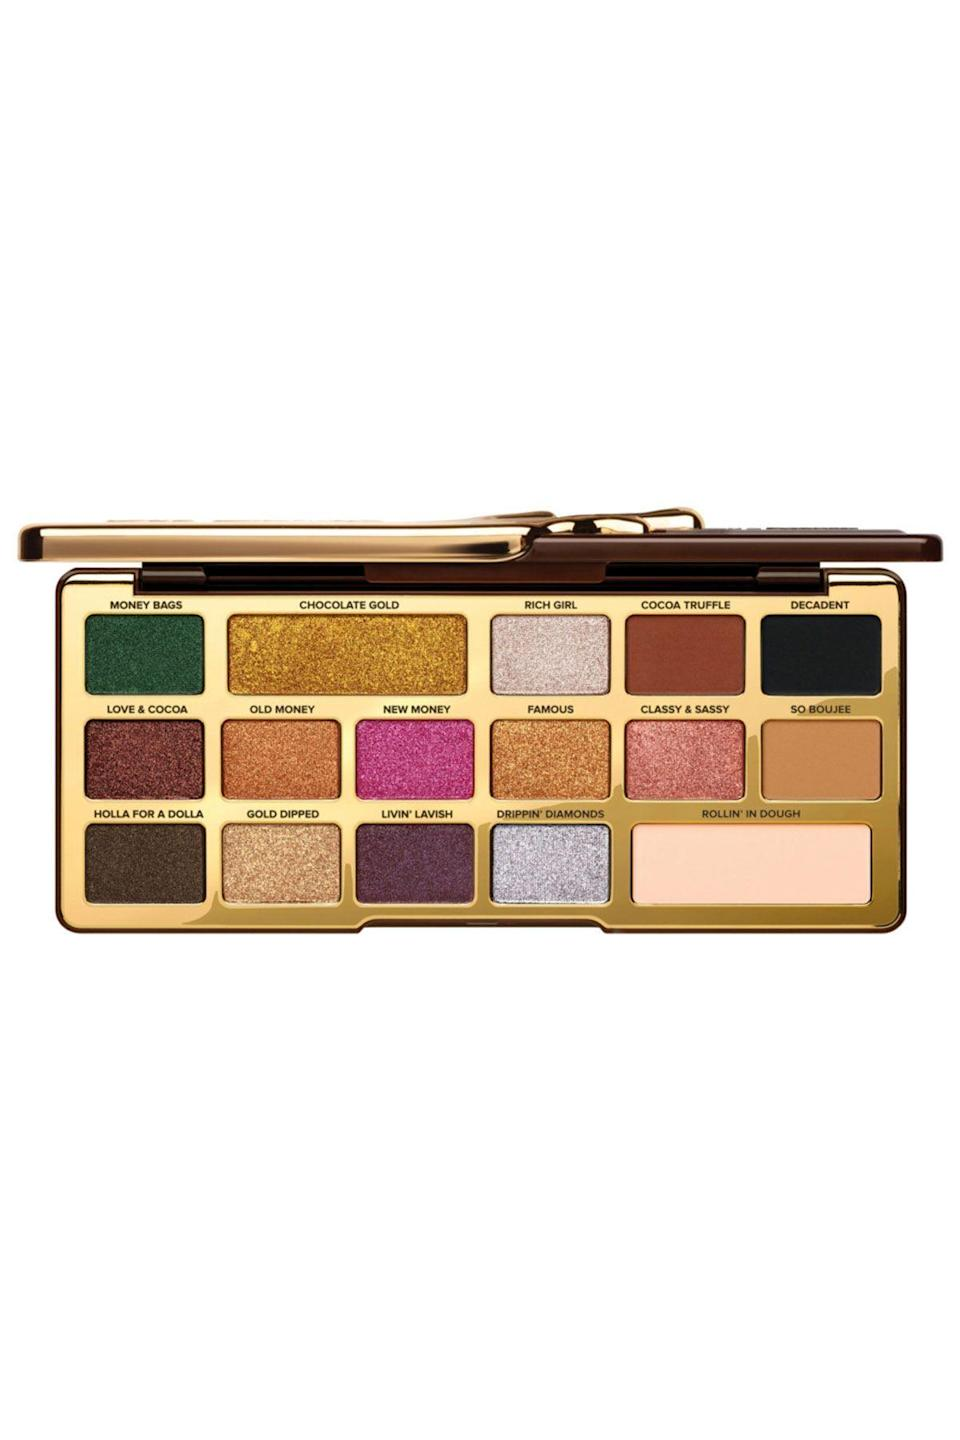 """<p><strong>Too Faced</strong></p><p>ulta.com</p><p><strong>$49.00</strong></p><p><a href=""""https://go.redirectingat.com?id=74968X1596630&url=https%3A%2F%2Fwww.ulta.com%2Fchocolate-gold-metallicmatte-eyeshadow-palette%3FproductId%3DxlsImpprod17351007&sref=https%3A%2F%2Fwww.seventeen.com%2Fbeauty%2Fg29487979%2Fbest-eyeshadow-makeup-palettes%2F"""" rel=""""nofollow noopener"""" target=""""_blank"""" data-ylk=""""slk:SHOP NOW"""" class=""""link rapid-noclick-resp"""">SHOP NOW</a></p><p>Want your lids to look <em>and </em>smell amazing? Well, this buttery eyeshadow palette not only features rich metallics and soft mattes, but is also infused with real cocoa powder.</p>"""